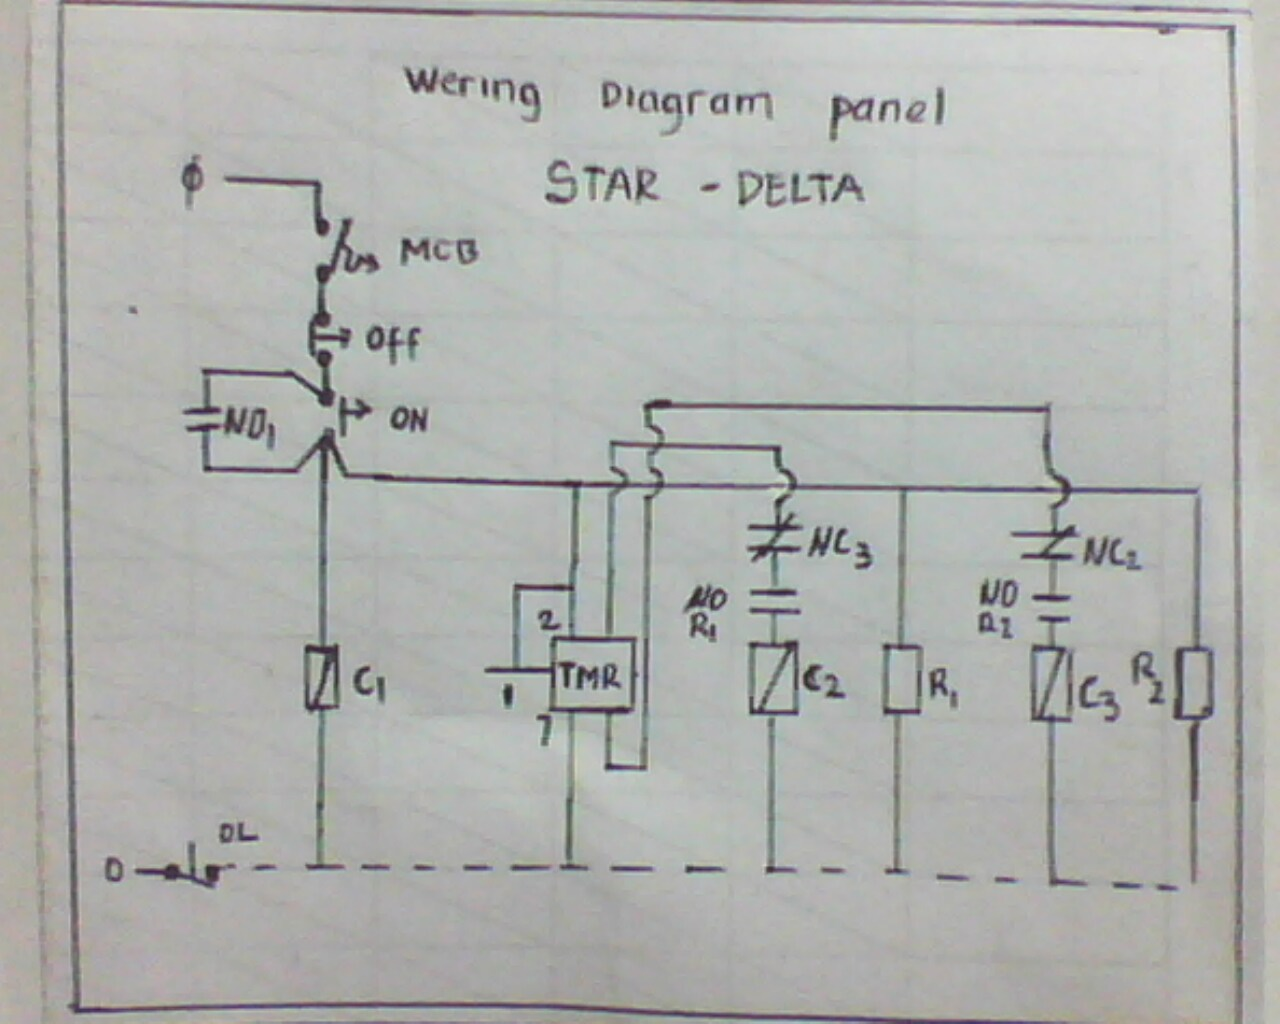 Instalasi panel listrik star delta star delta is the circuit to run the electric motor which at the time of star using a hub star star and moments later turned into a delta triangle ccuart Choice Image